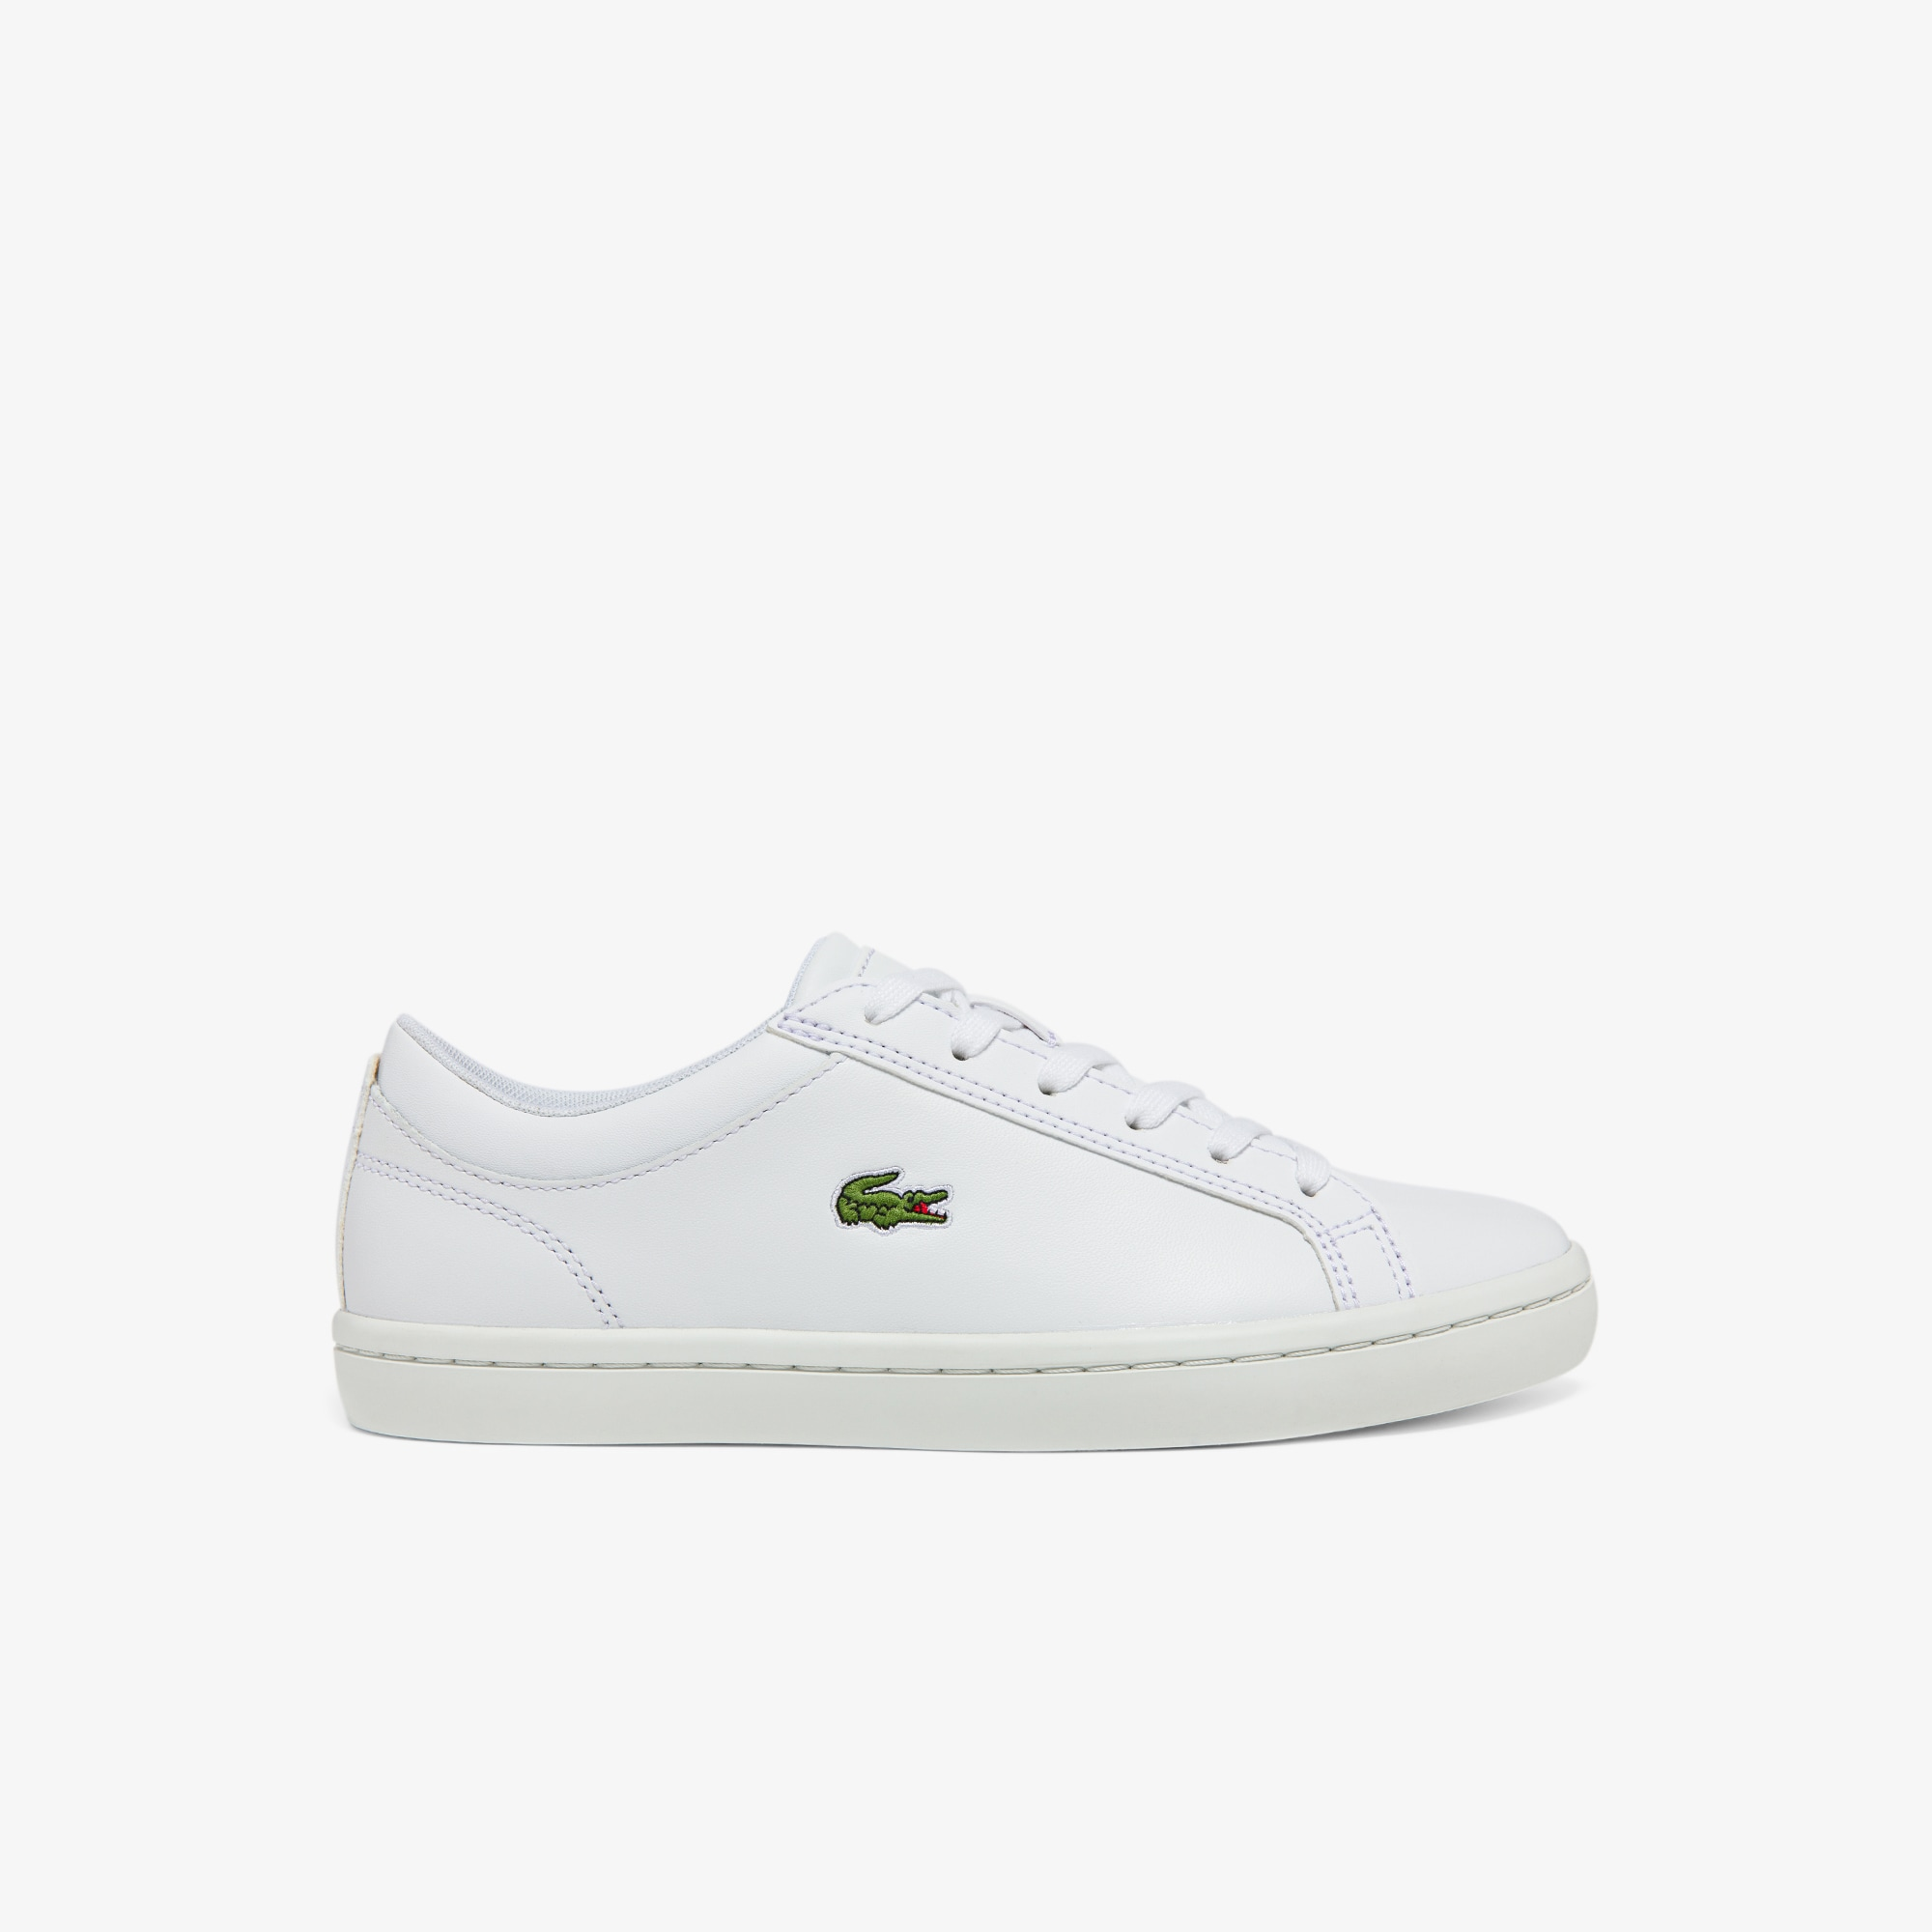 155f2ae32a97d7 Chaussures femme | Collection Femme | LACOSTE